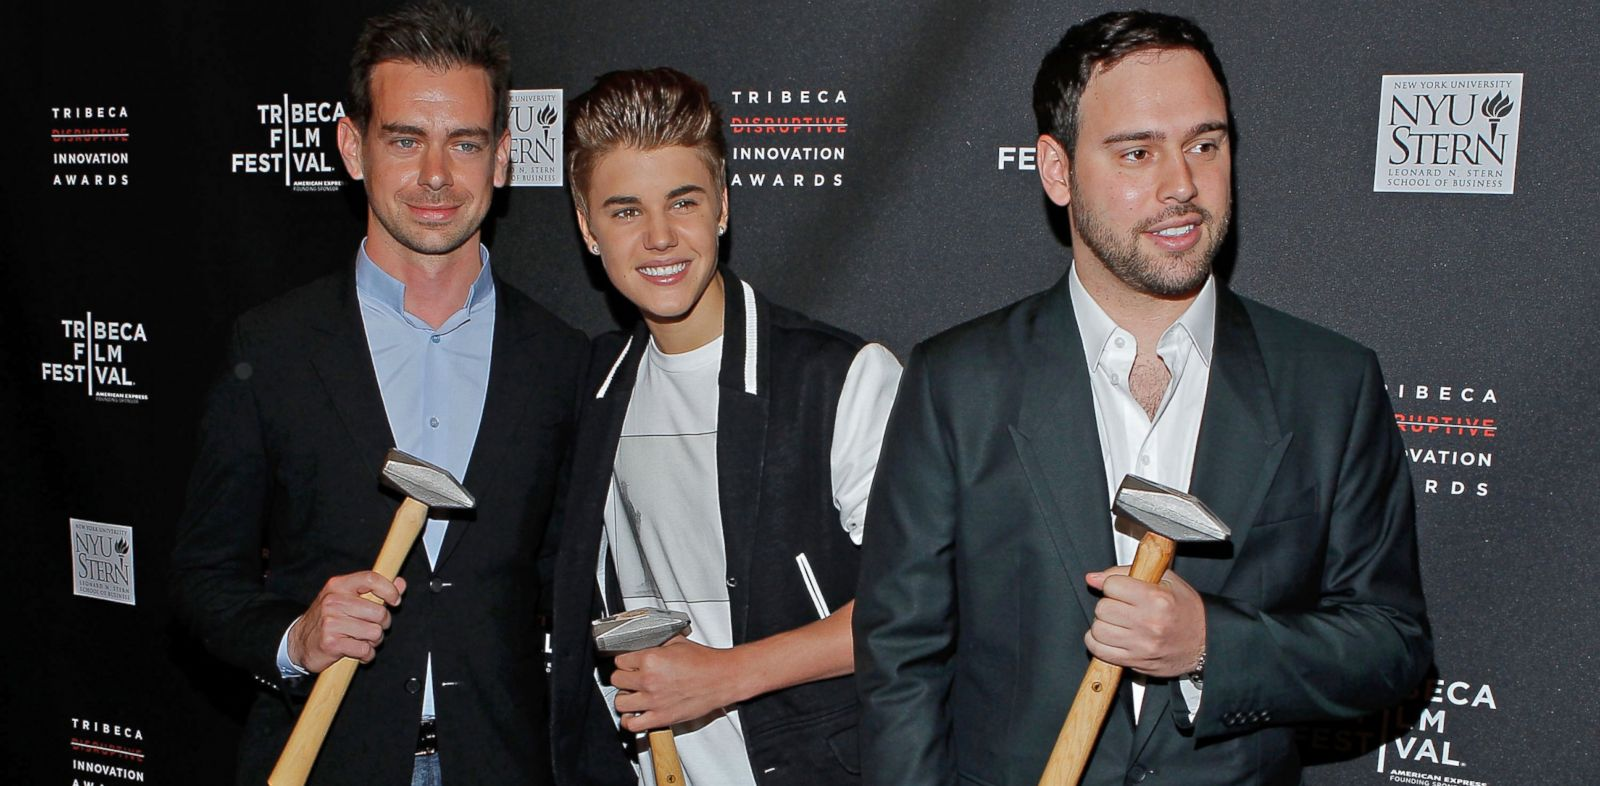 PHOTO: Twitter founder Jack Dorsey, singer Justin Bieber and Scooter Braun, left to right, attend the Tribeca Disruptive Innovation Awards during the 2012 Tribeca Film Festival, April 27, 2012, in New York.